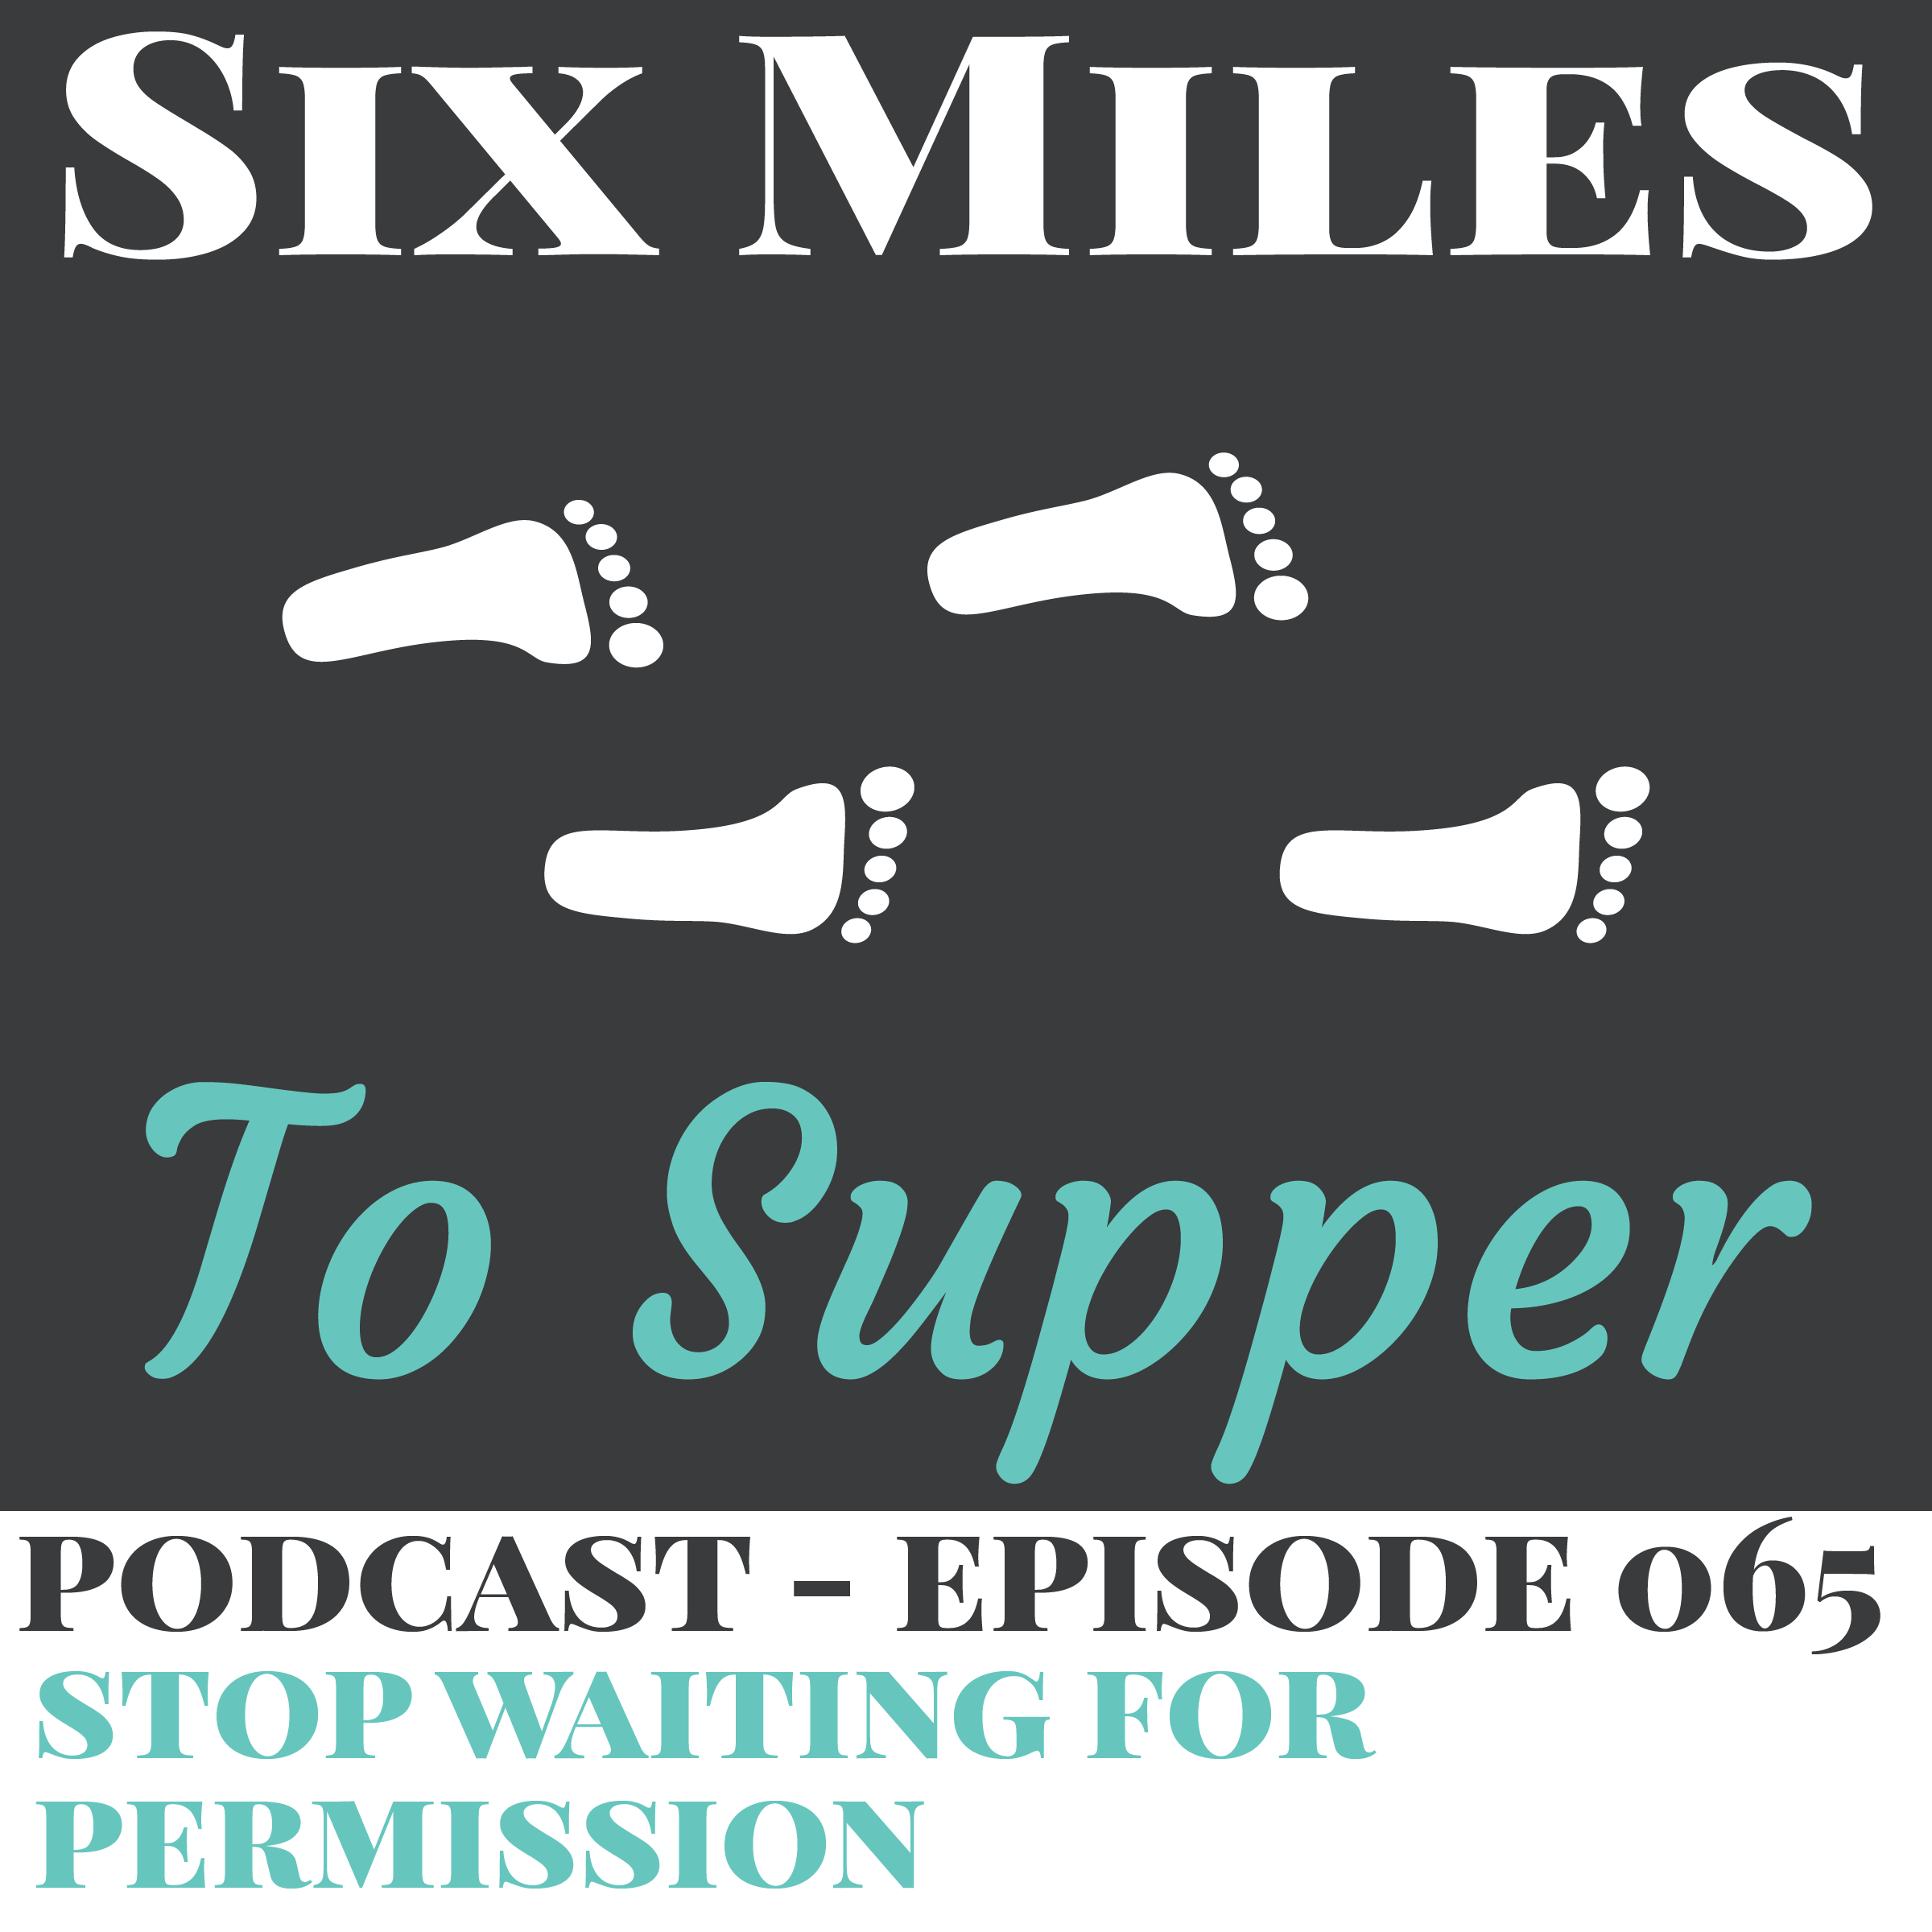 SMTS 065: Stop Waiting for Permission